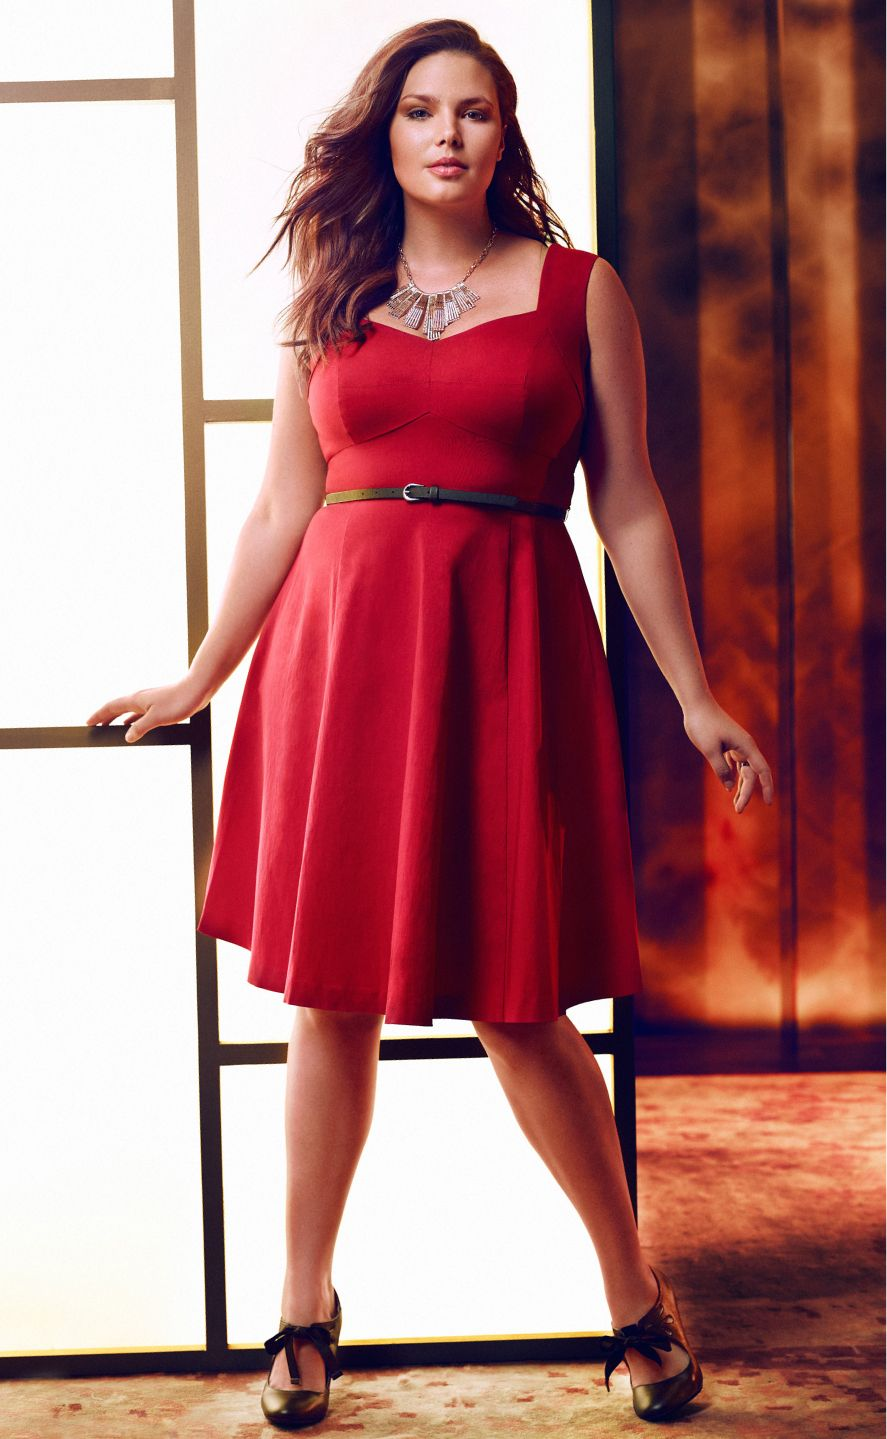 red swing dress plus size torrid swing dressi i really want that 500 00 gift card